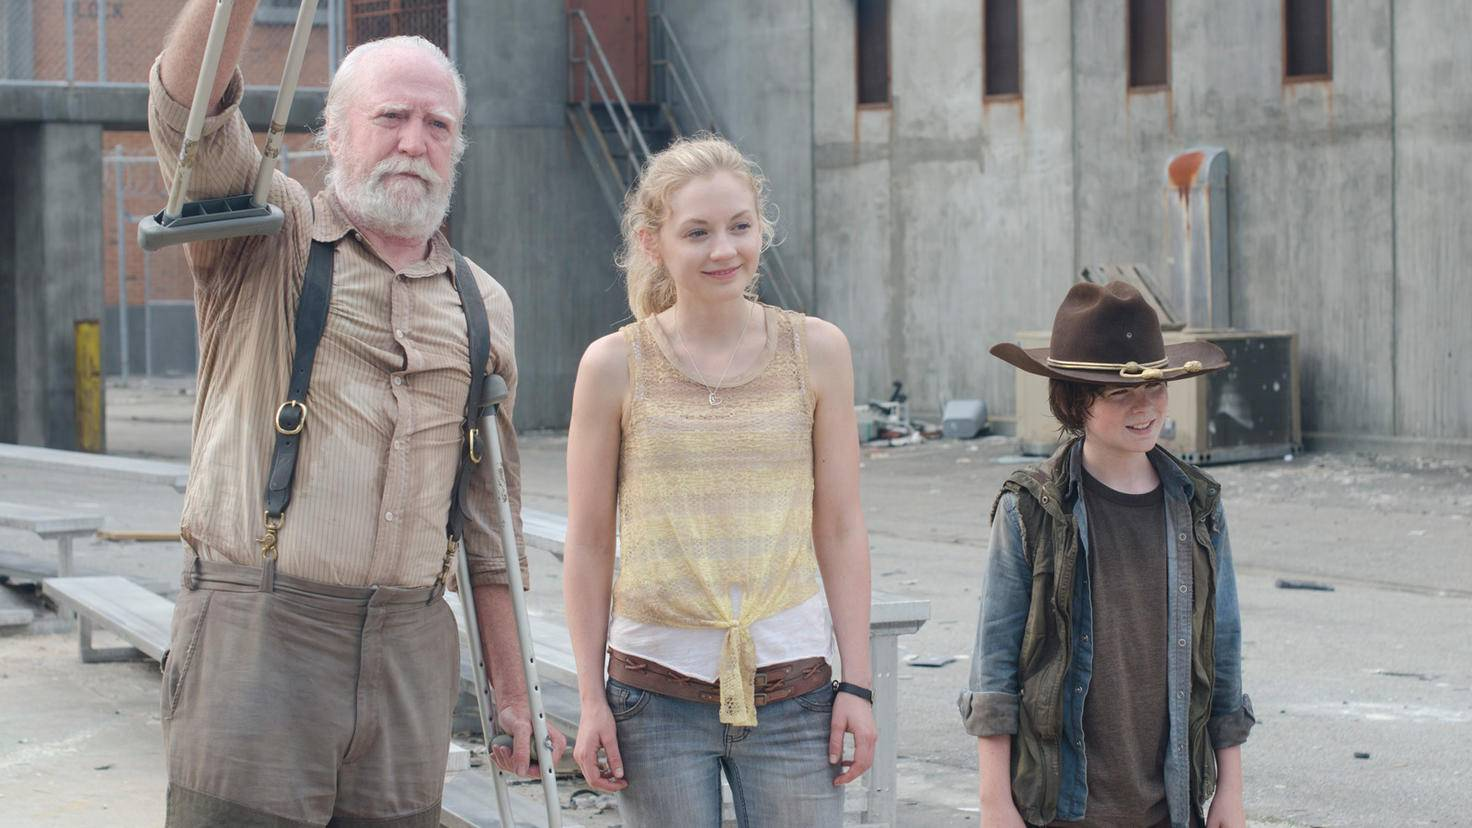 The Walking Dead-Hershel-Scott Wilson-Gene Page-AMC-TWD_GP_304_0614_0472